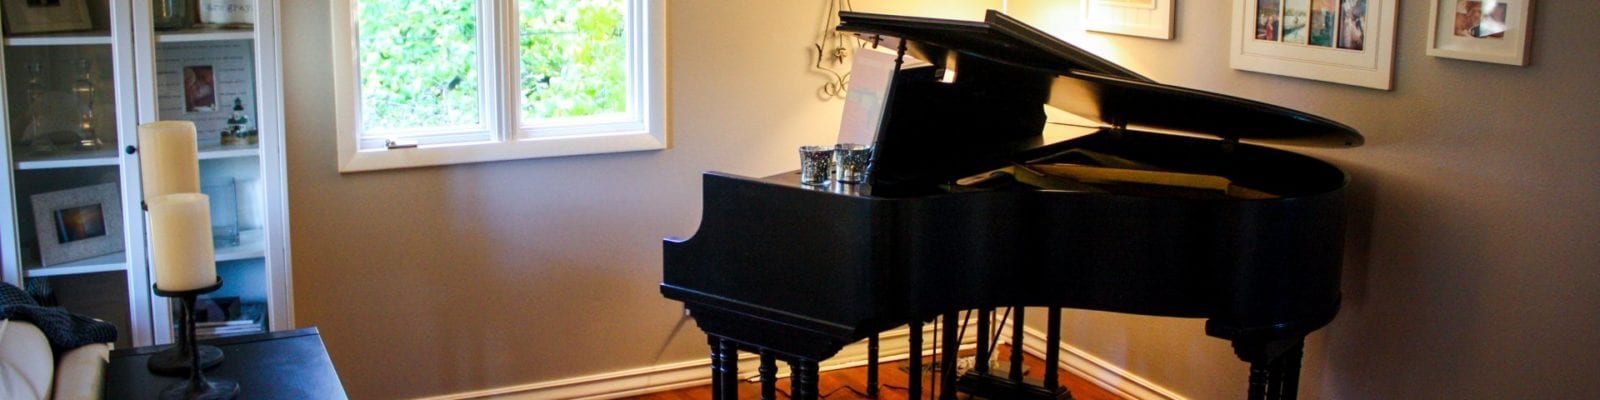 Piano Demo Videos for Jim Laabs Music